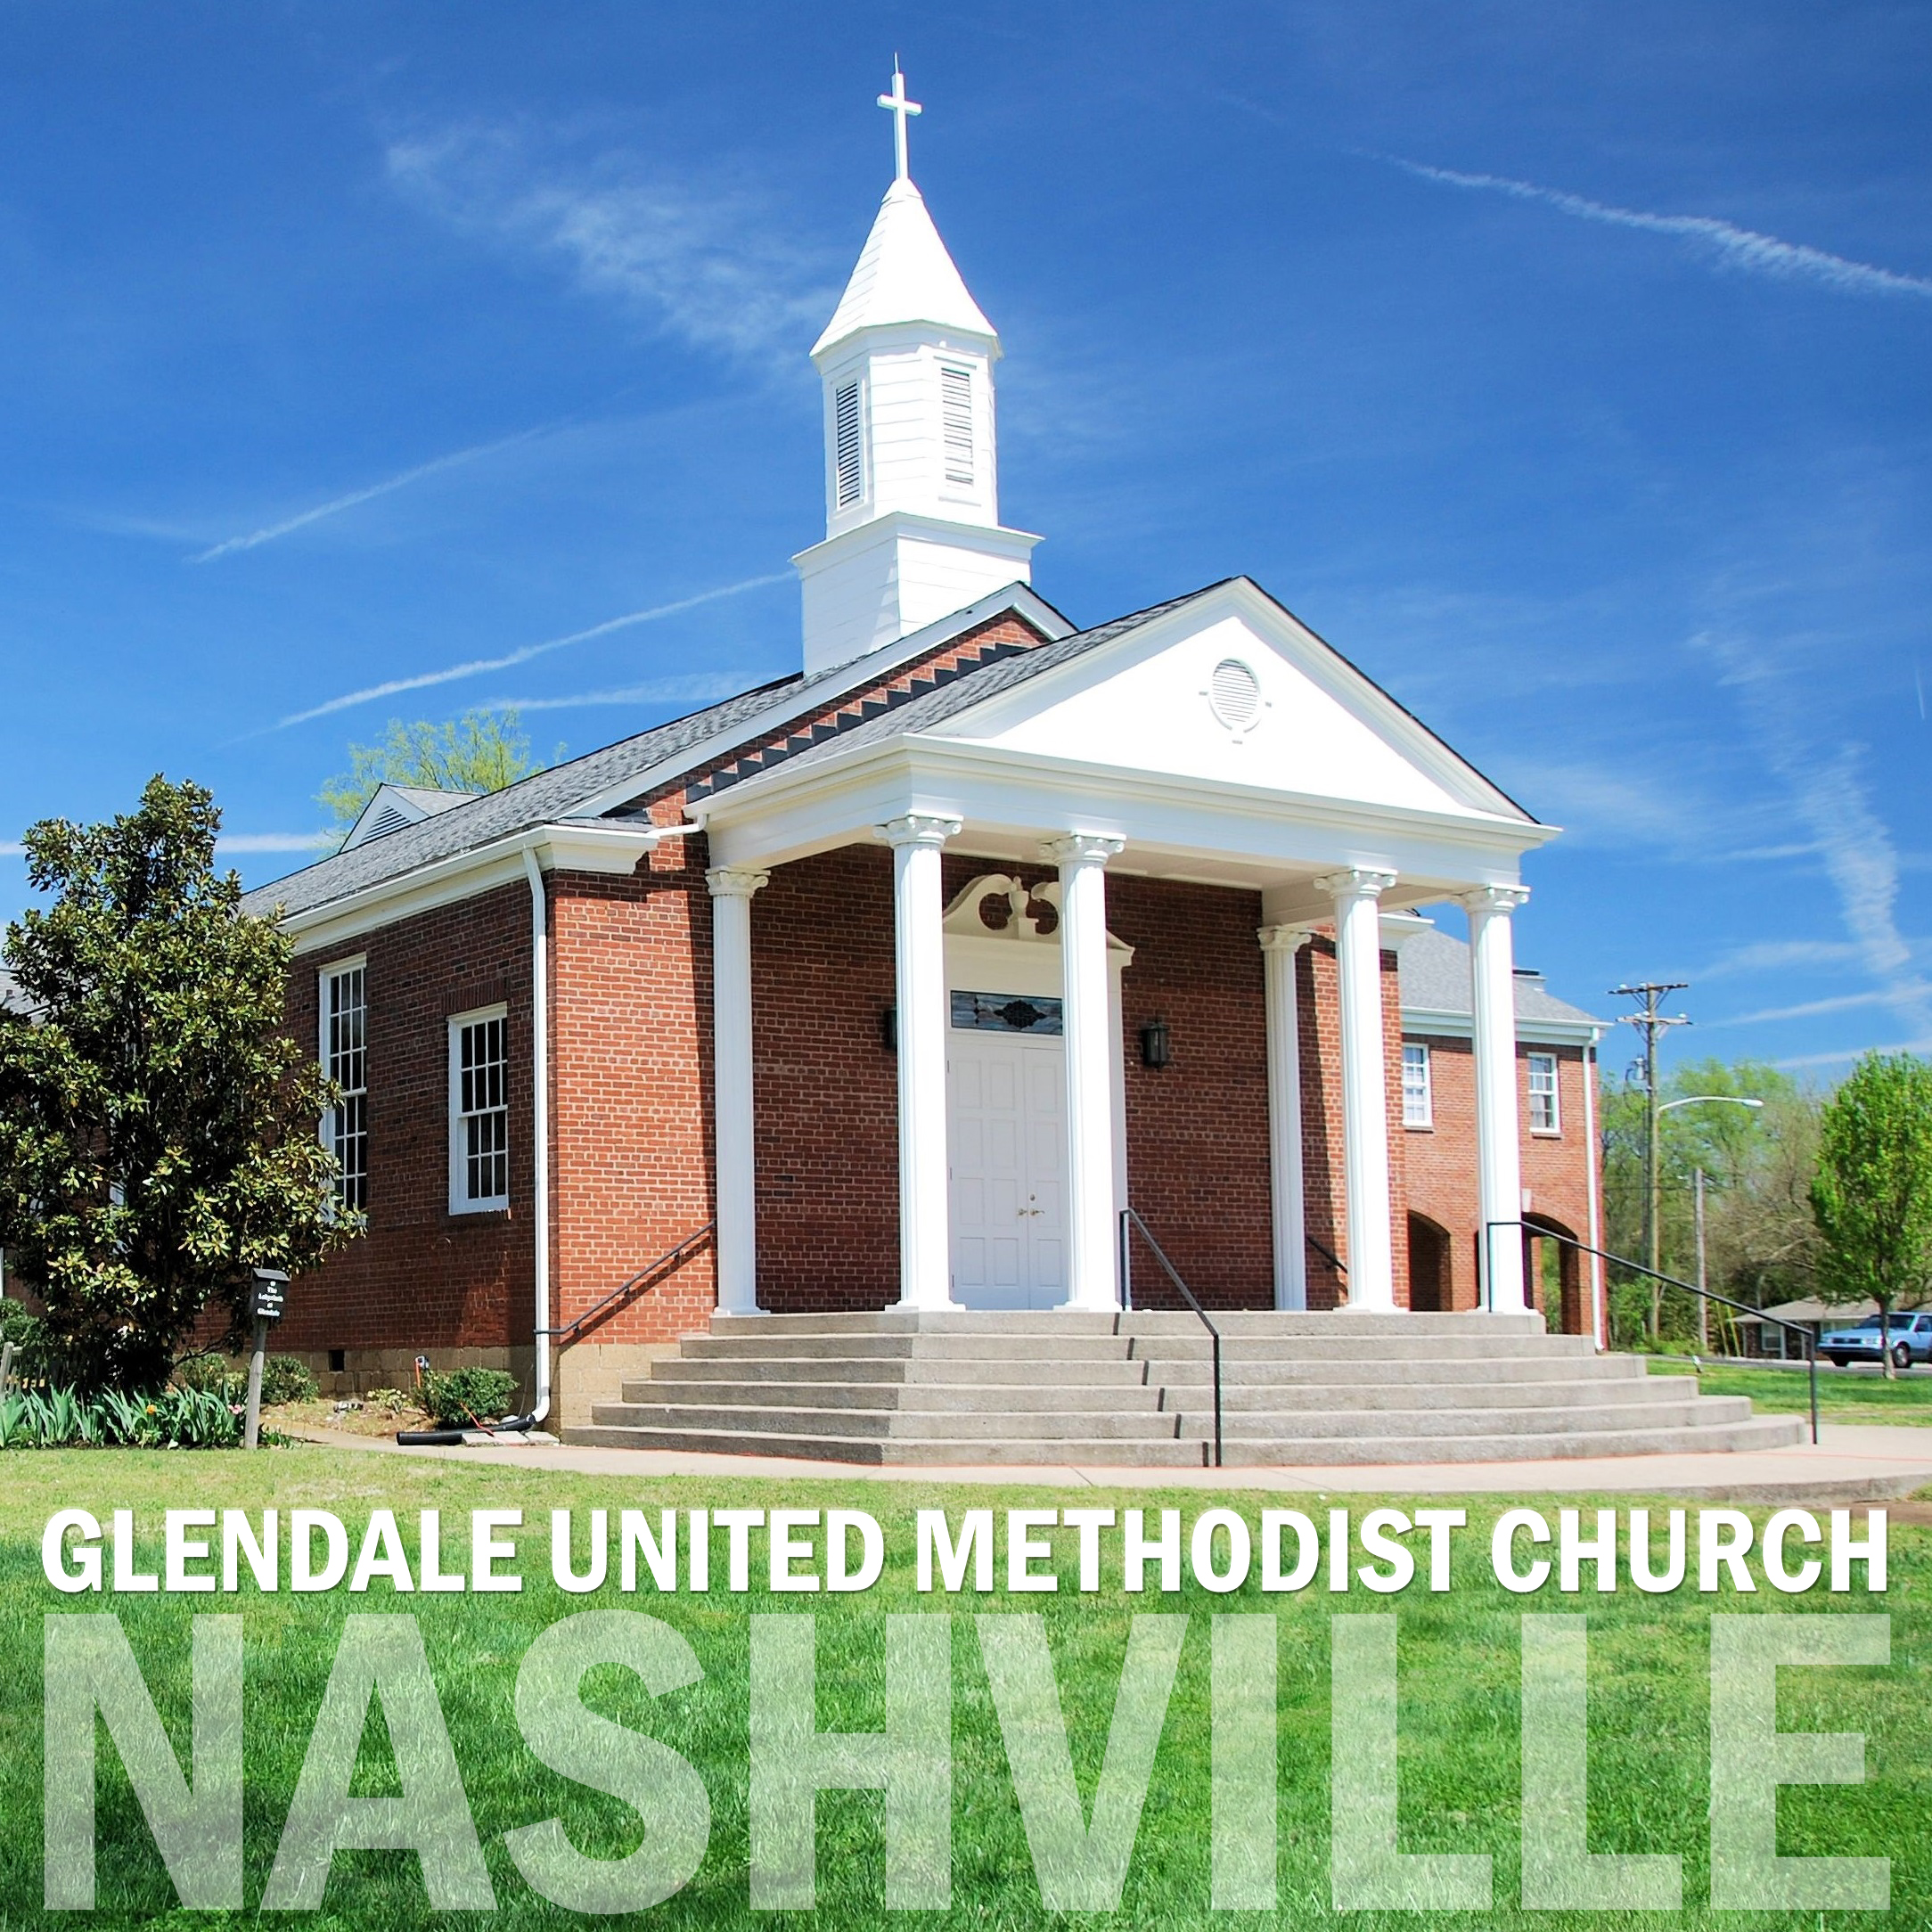 Glendale United Methodist Church Nashville TN